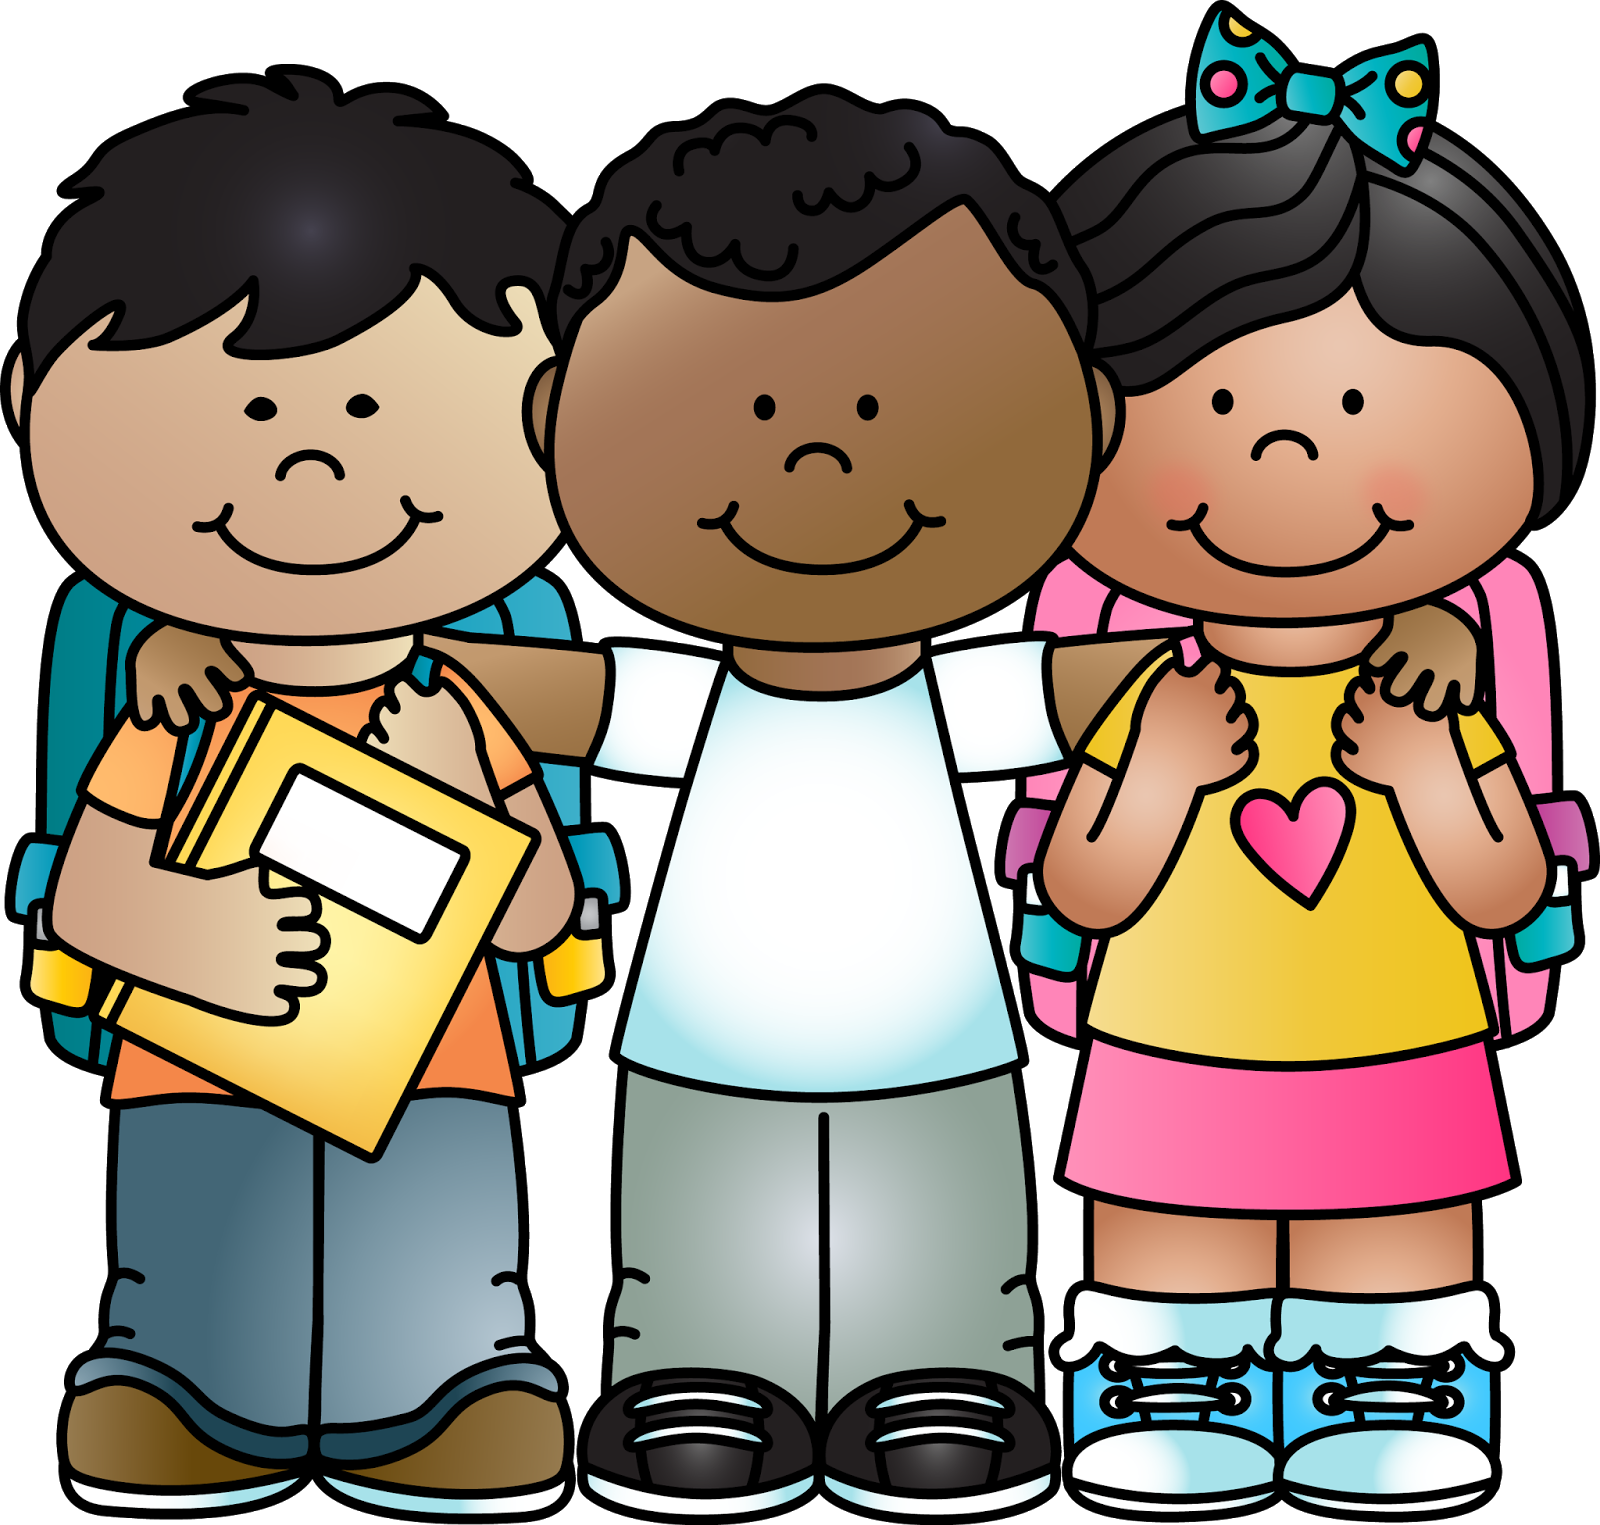 Children in school clipart svg library stock School Kids Clipart Collection (69+) svg library stock